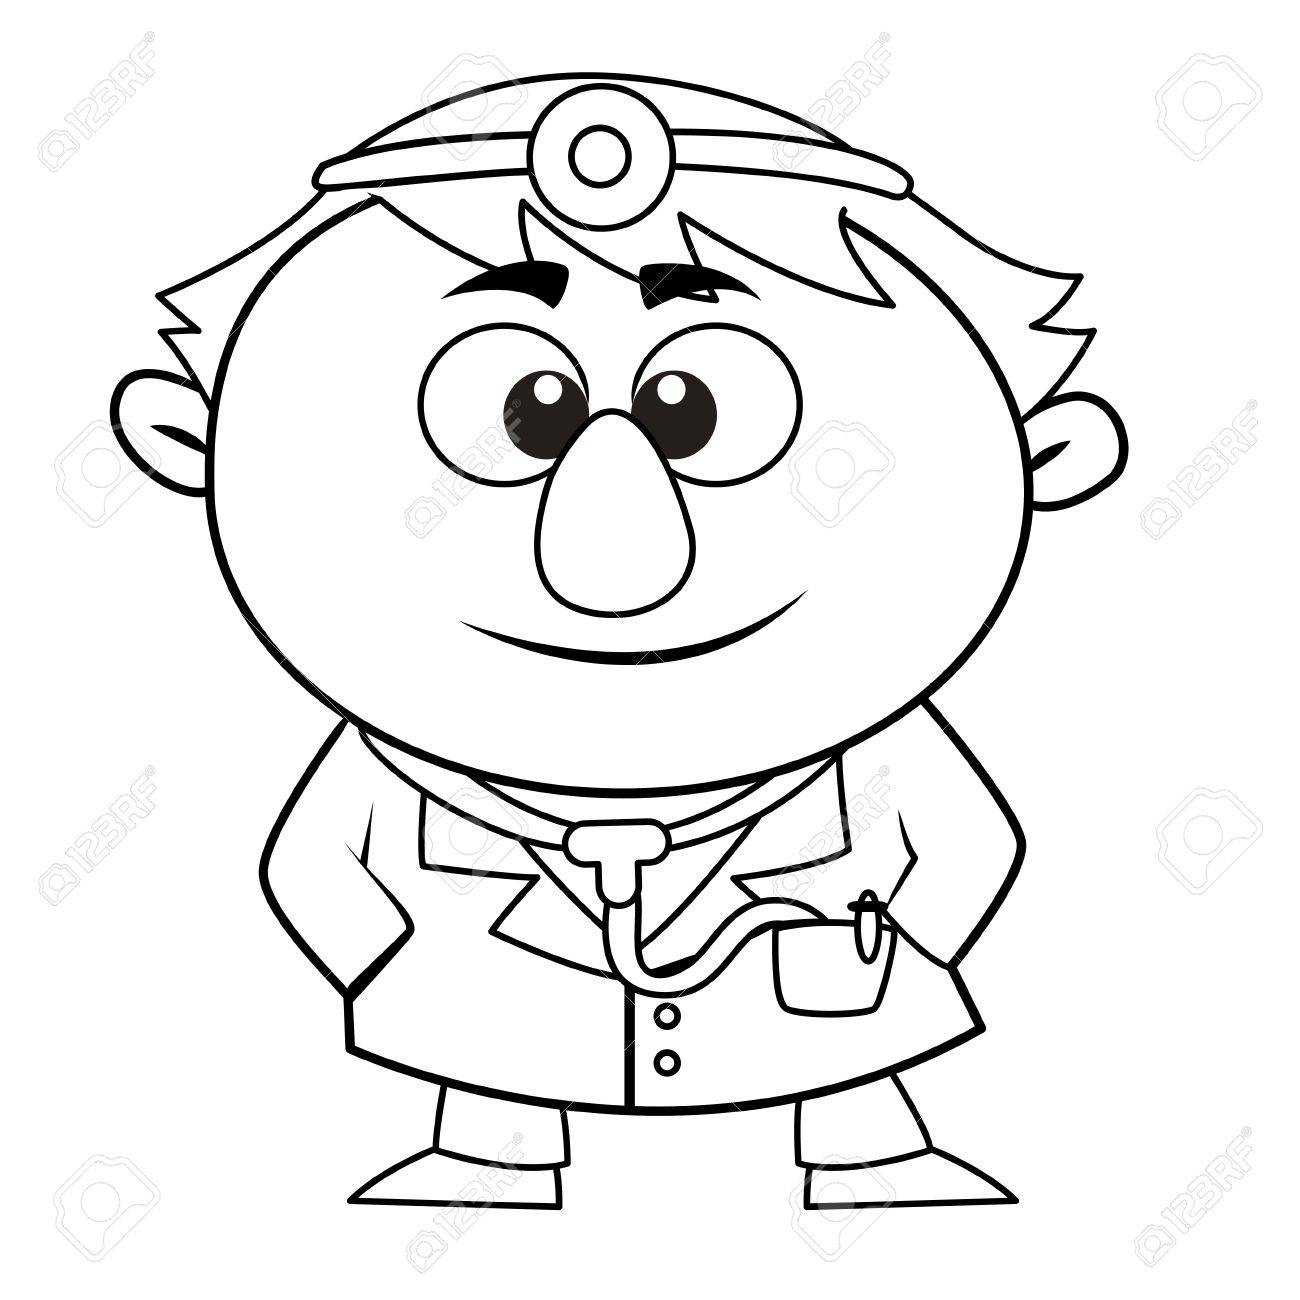 black and white coloring page outline of a doctor royalty free